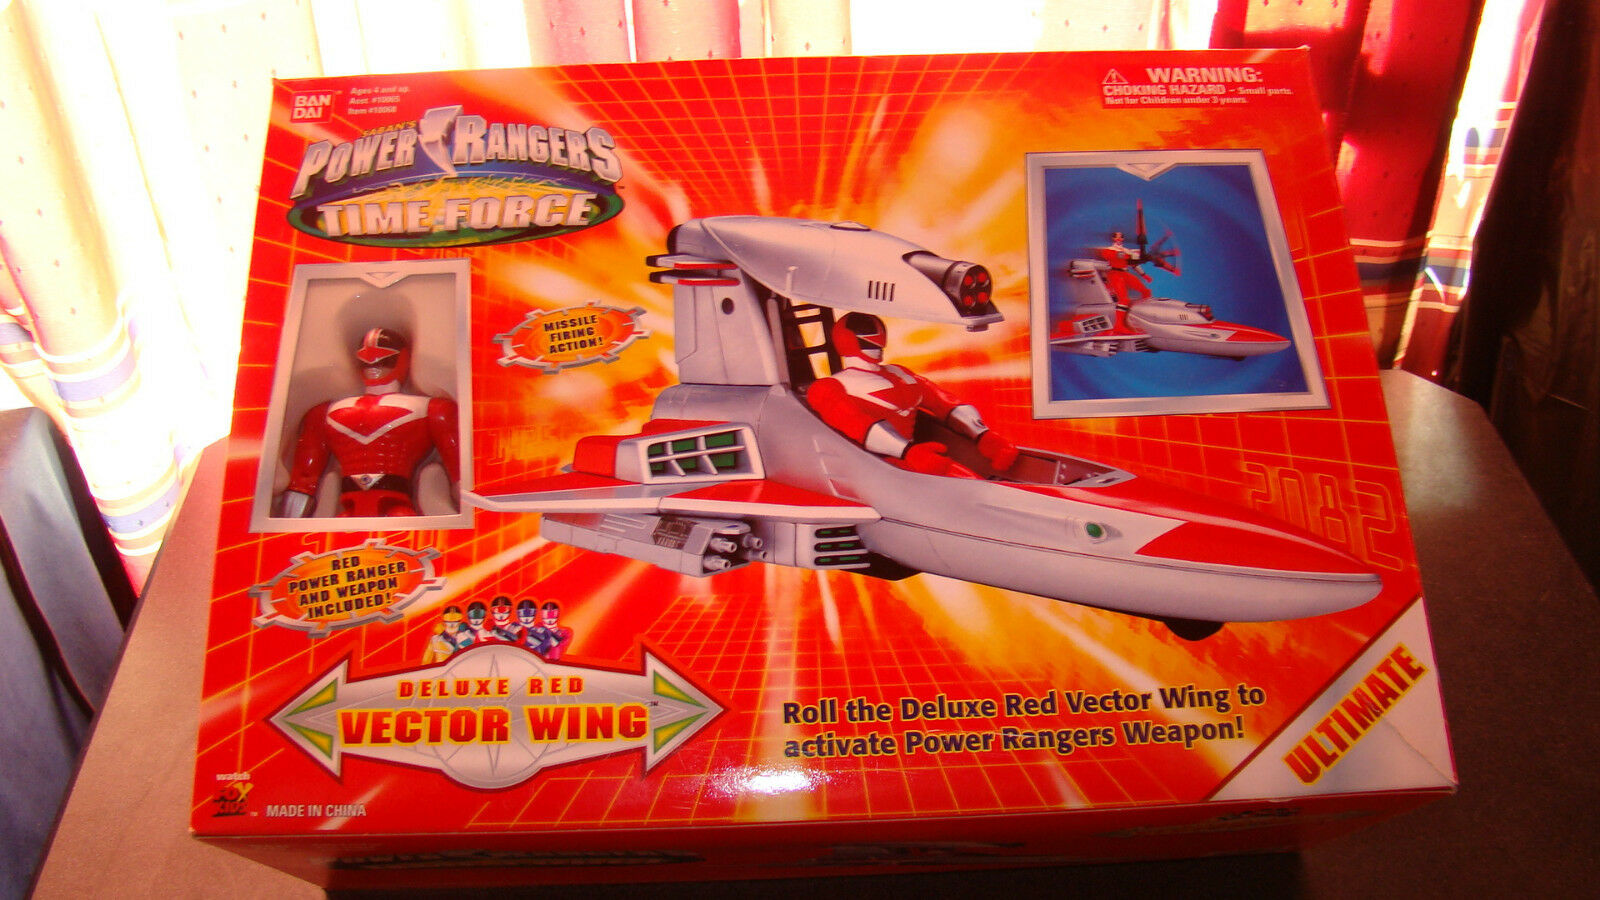 Power Rangers Time Force Deluxe ROT Vector / Wing with Instructions / Vector Box RARE e83924